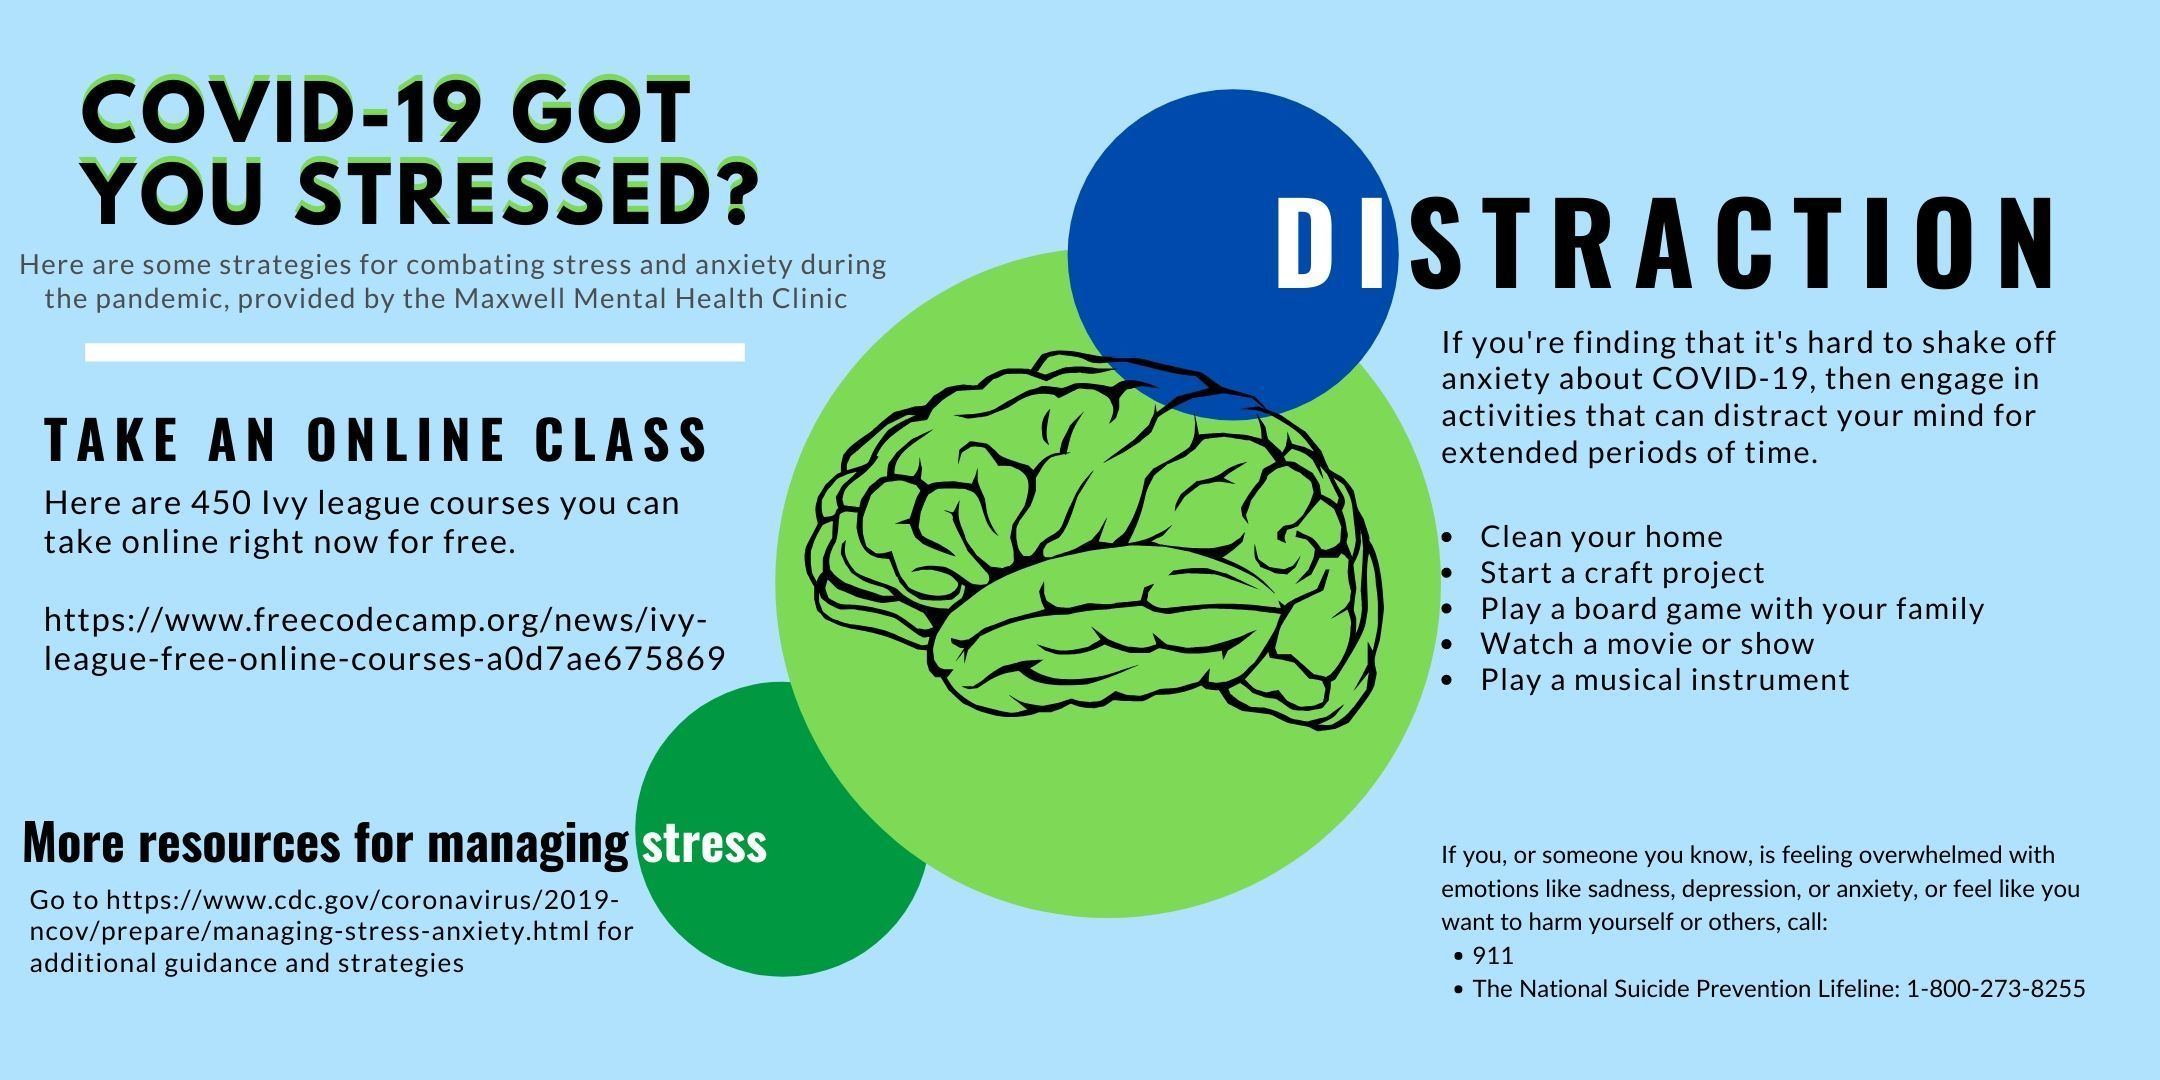 COVID-19 Got You Stressed? Tips for managing stress during a pandemic